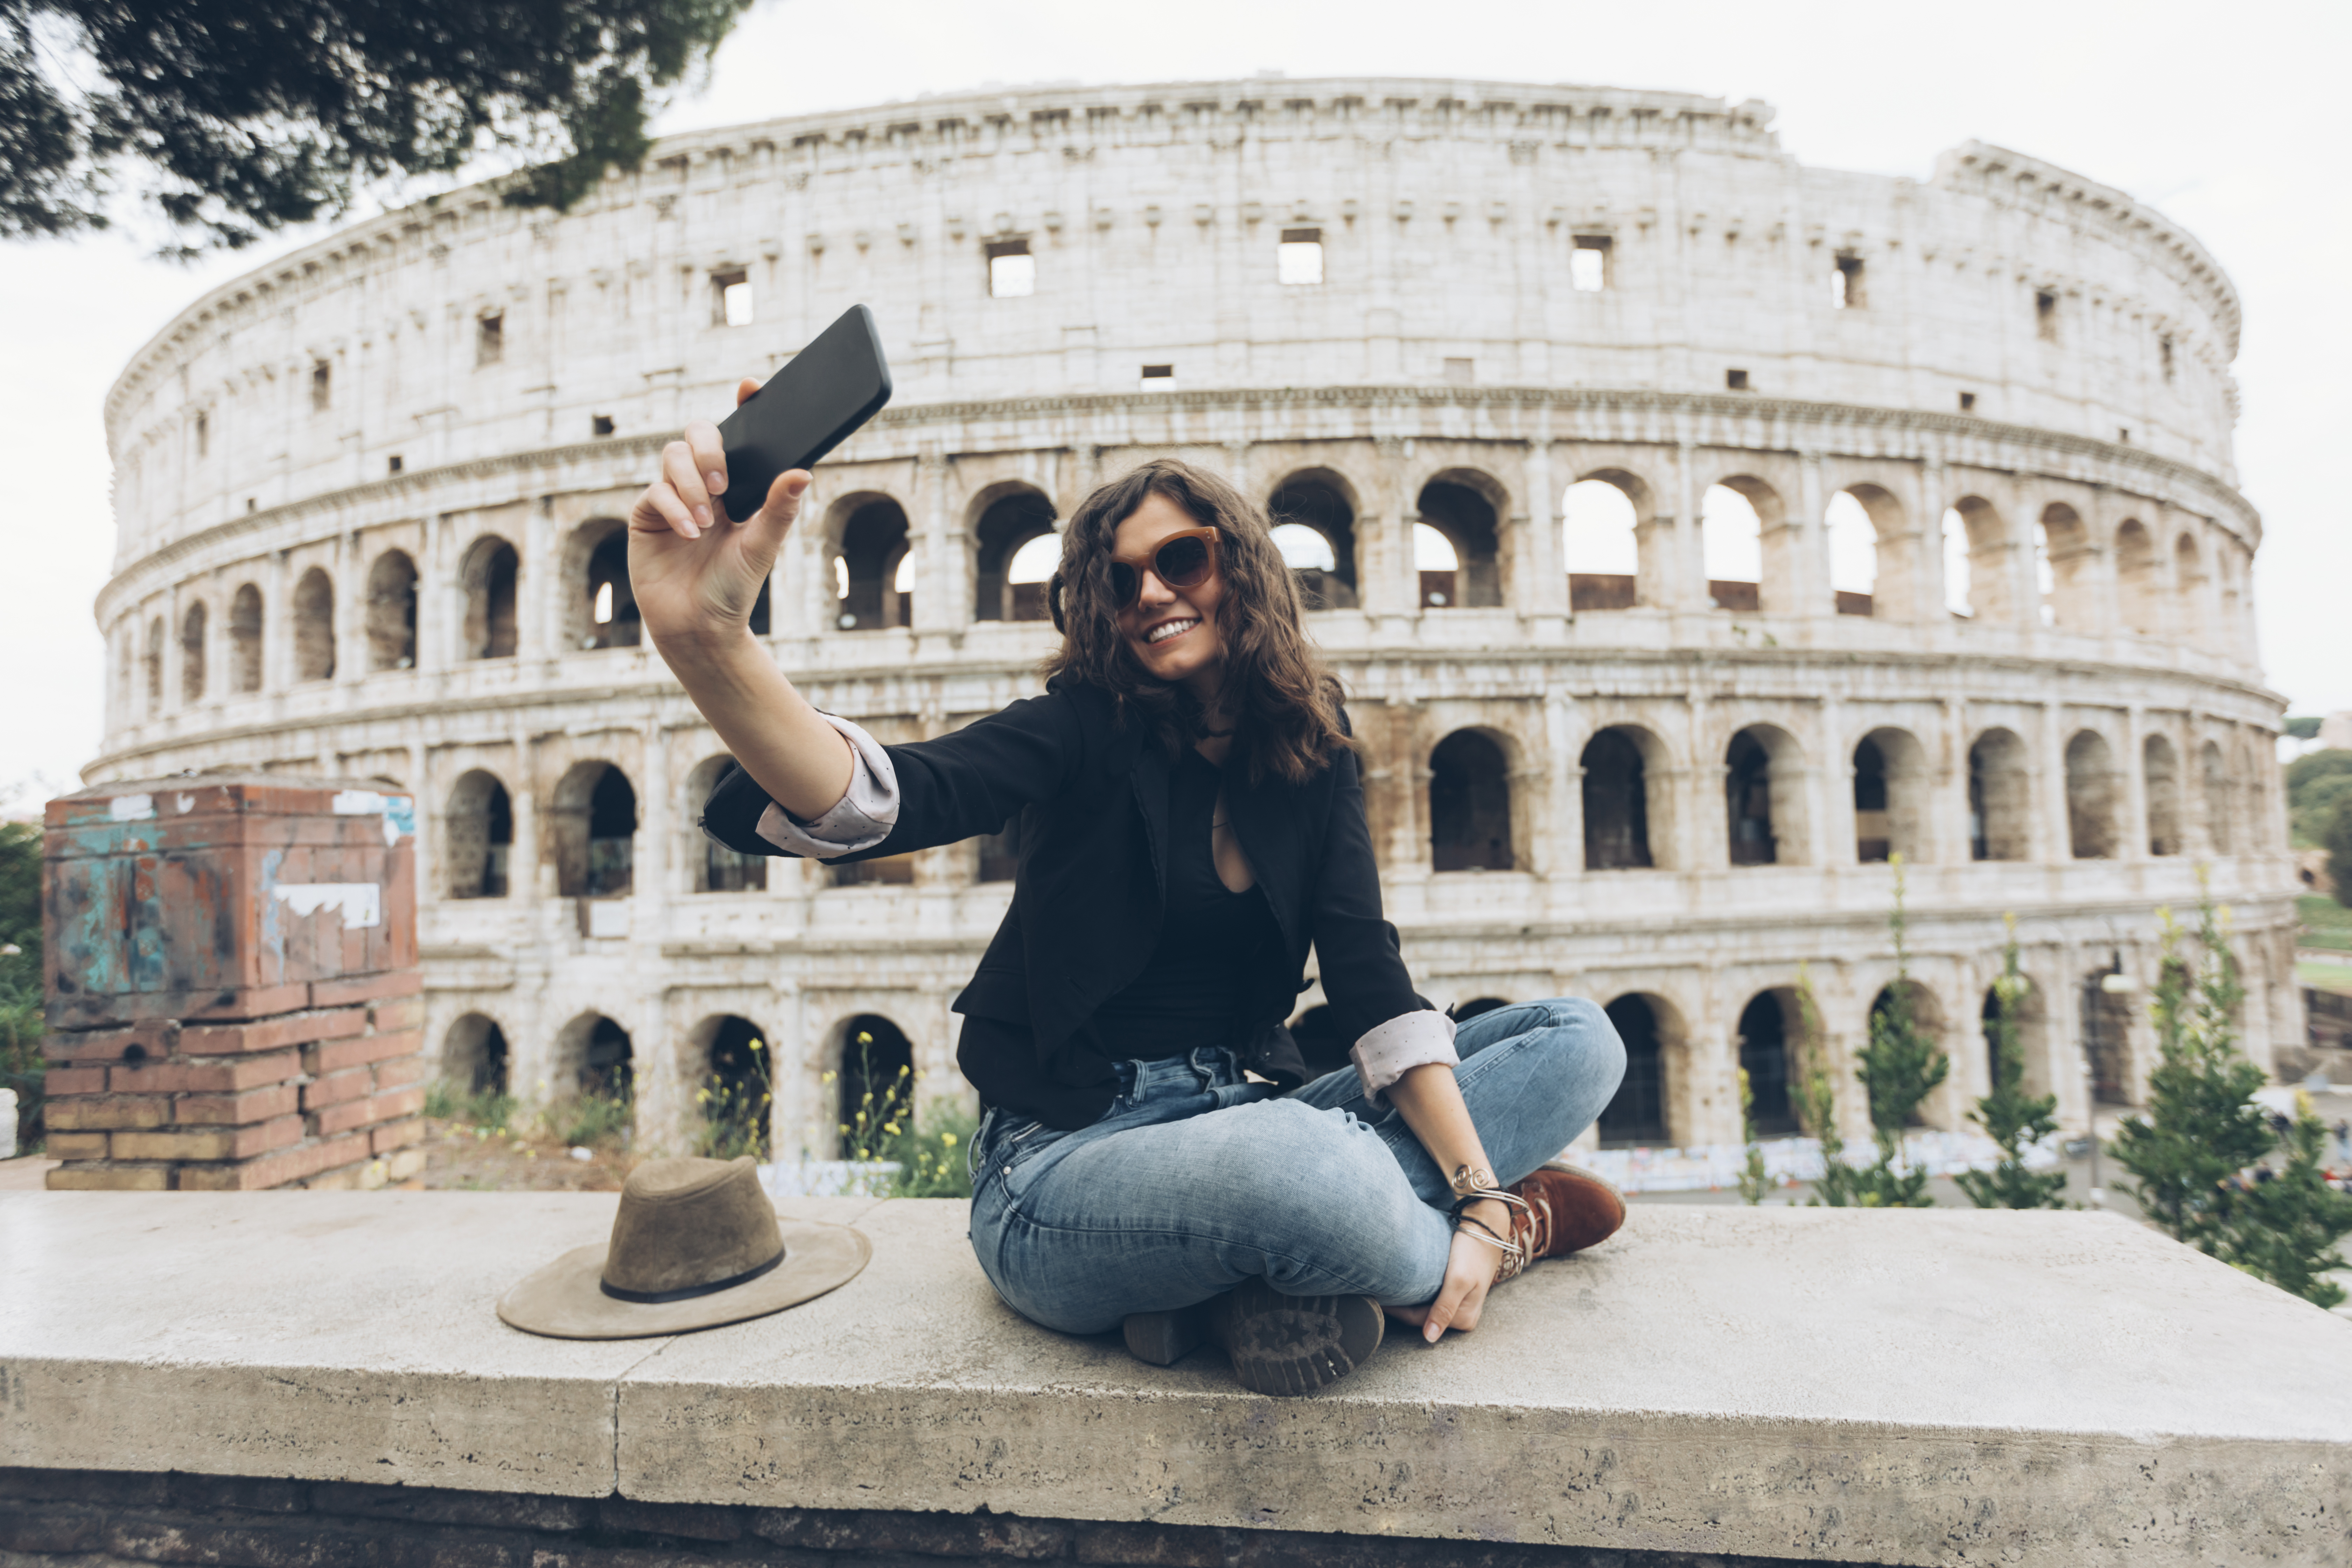 Young woman taking selfie in front of Coliseum